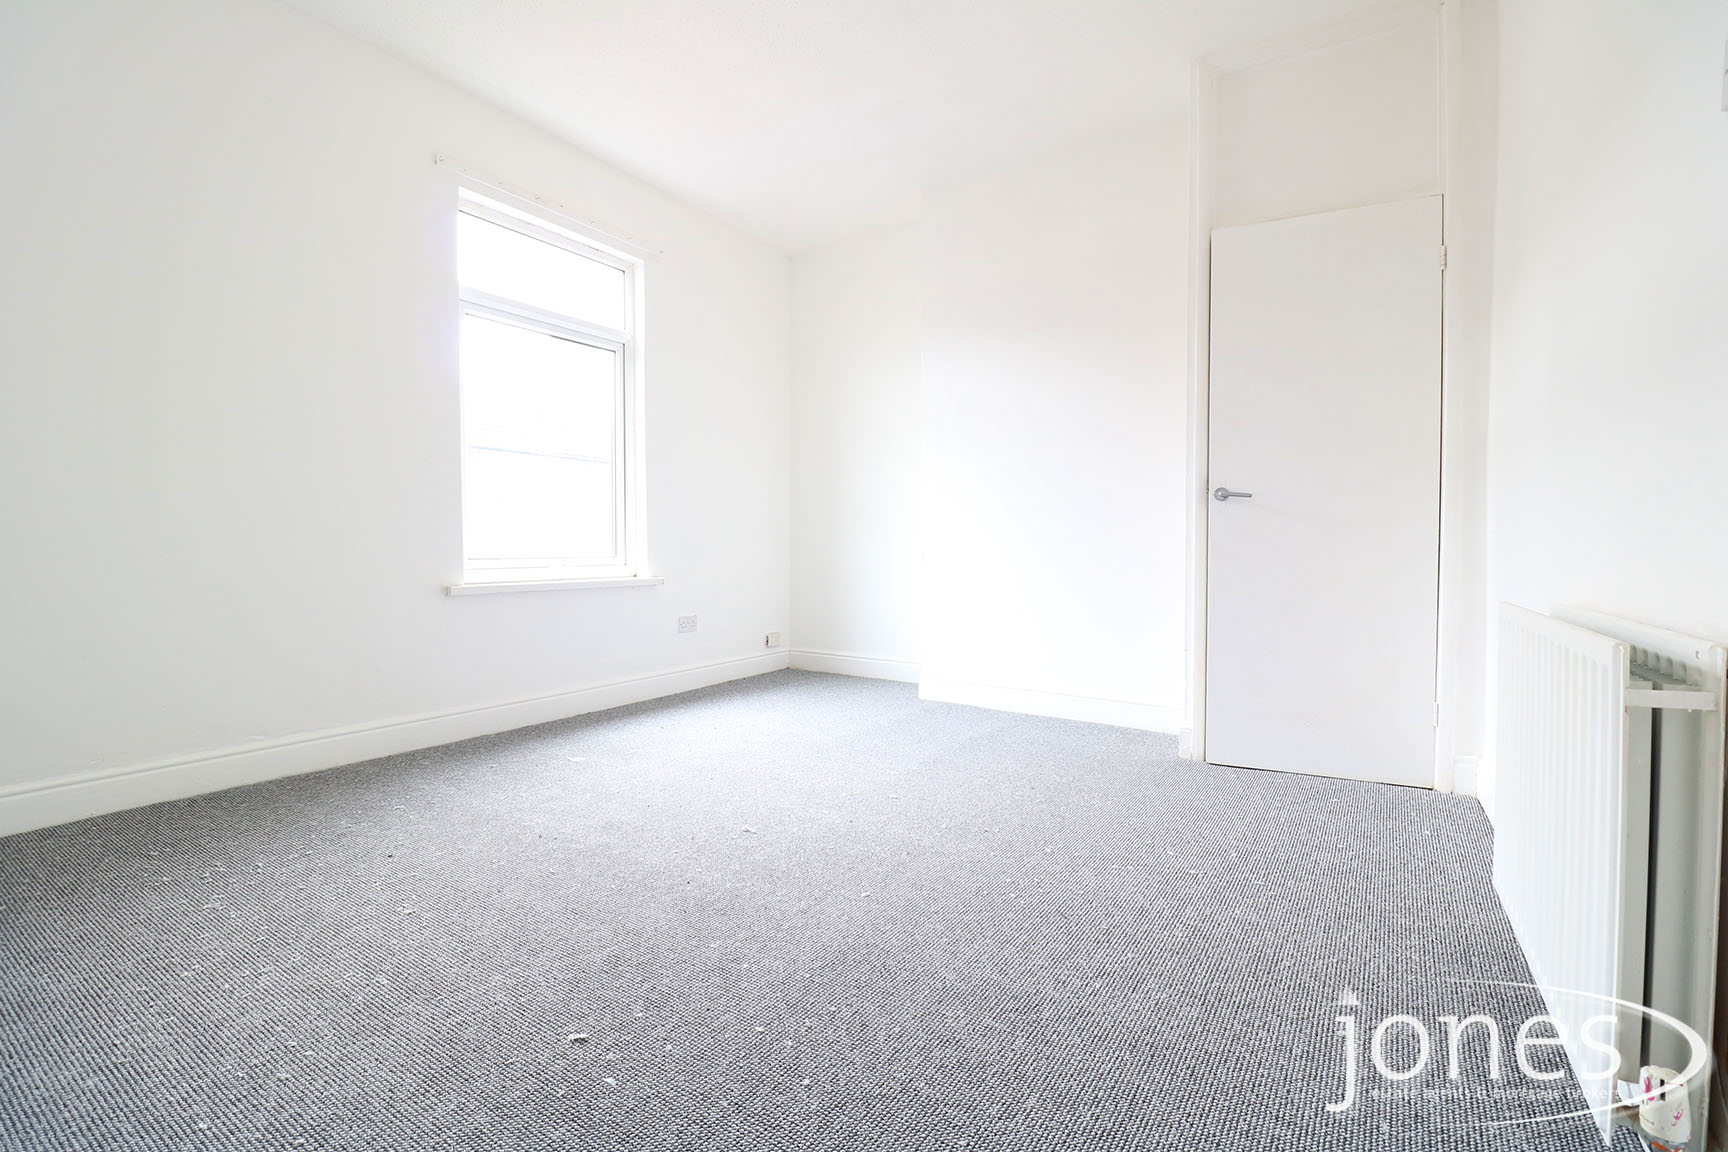 Home for Sale Let - Photo 06 Mansfield Avenue, Thornaby, Stockton on Tees, TS17 7HQ